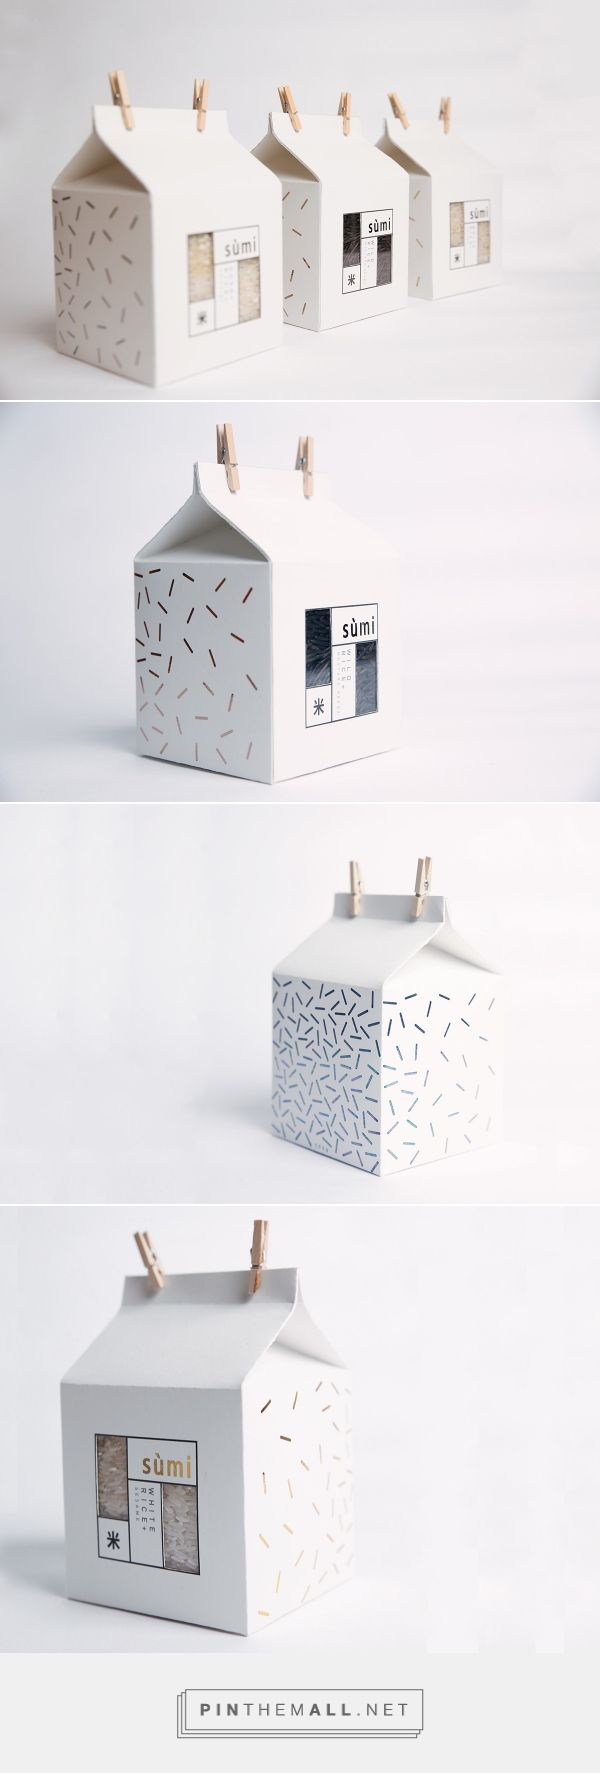 Sùmi Rice Packaging on Behance... - a grouped images picture - Pin Them All                                                                                                                                                                                 More